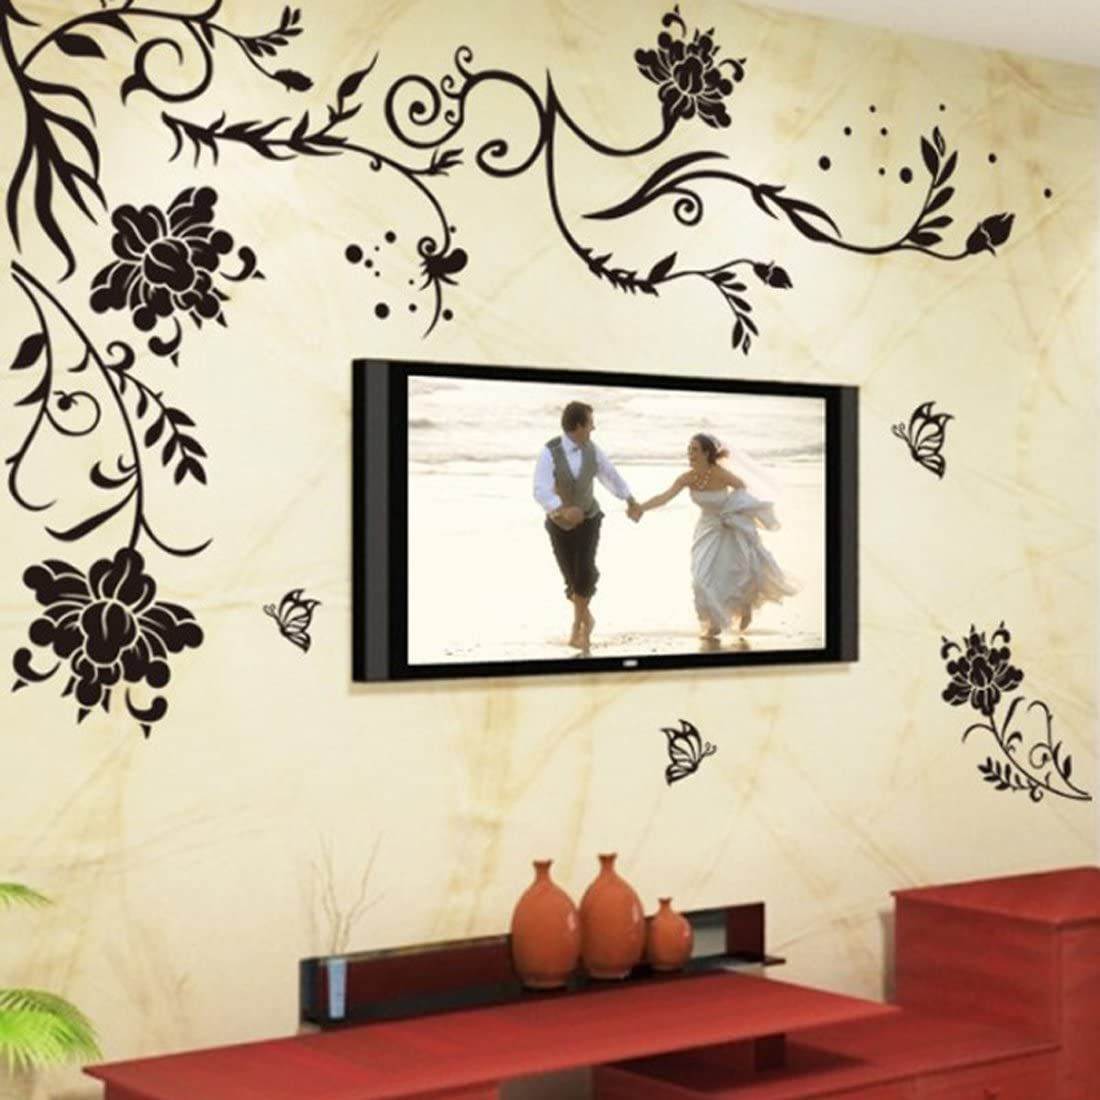 Wall Decal Black Flowers Leaves Vines Butterflies Wall Decal Home Sticker Paper Removable Living Room Bedroom Art Picture DIY Mural Kids Nursery Baby + Gift Colorful Butterflies